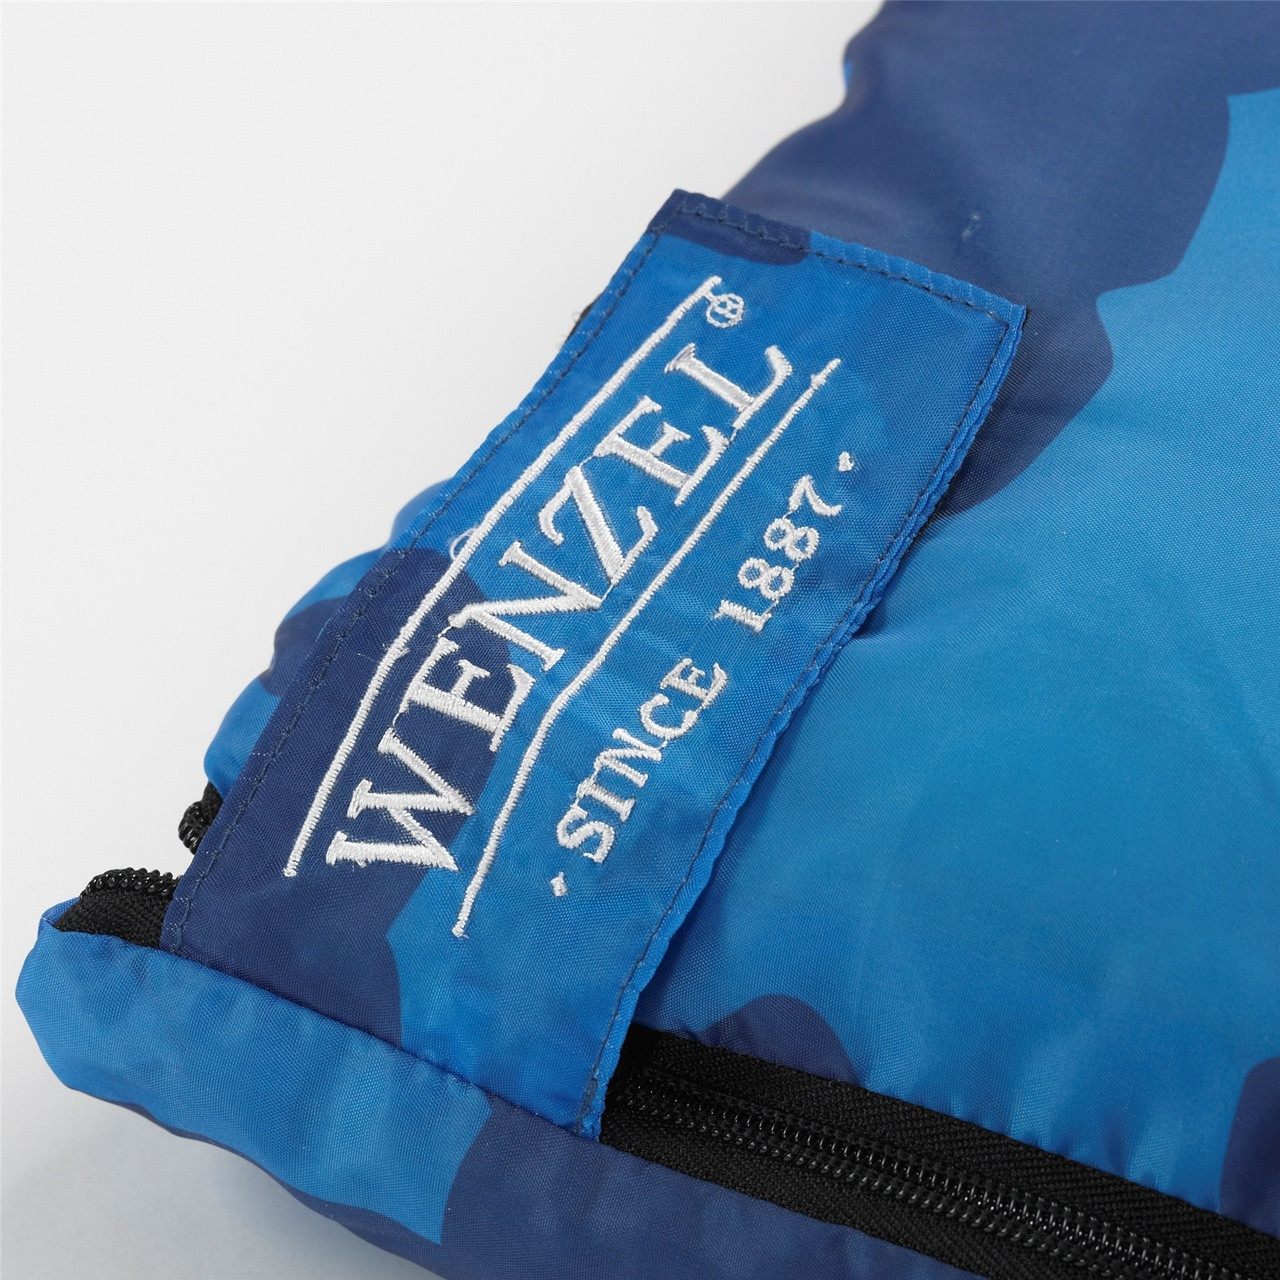 Close up view of the Velcro latch over the zipper on the Wenzel Kids Blue Moose 40 degree sleeping bag